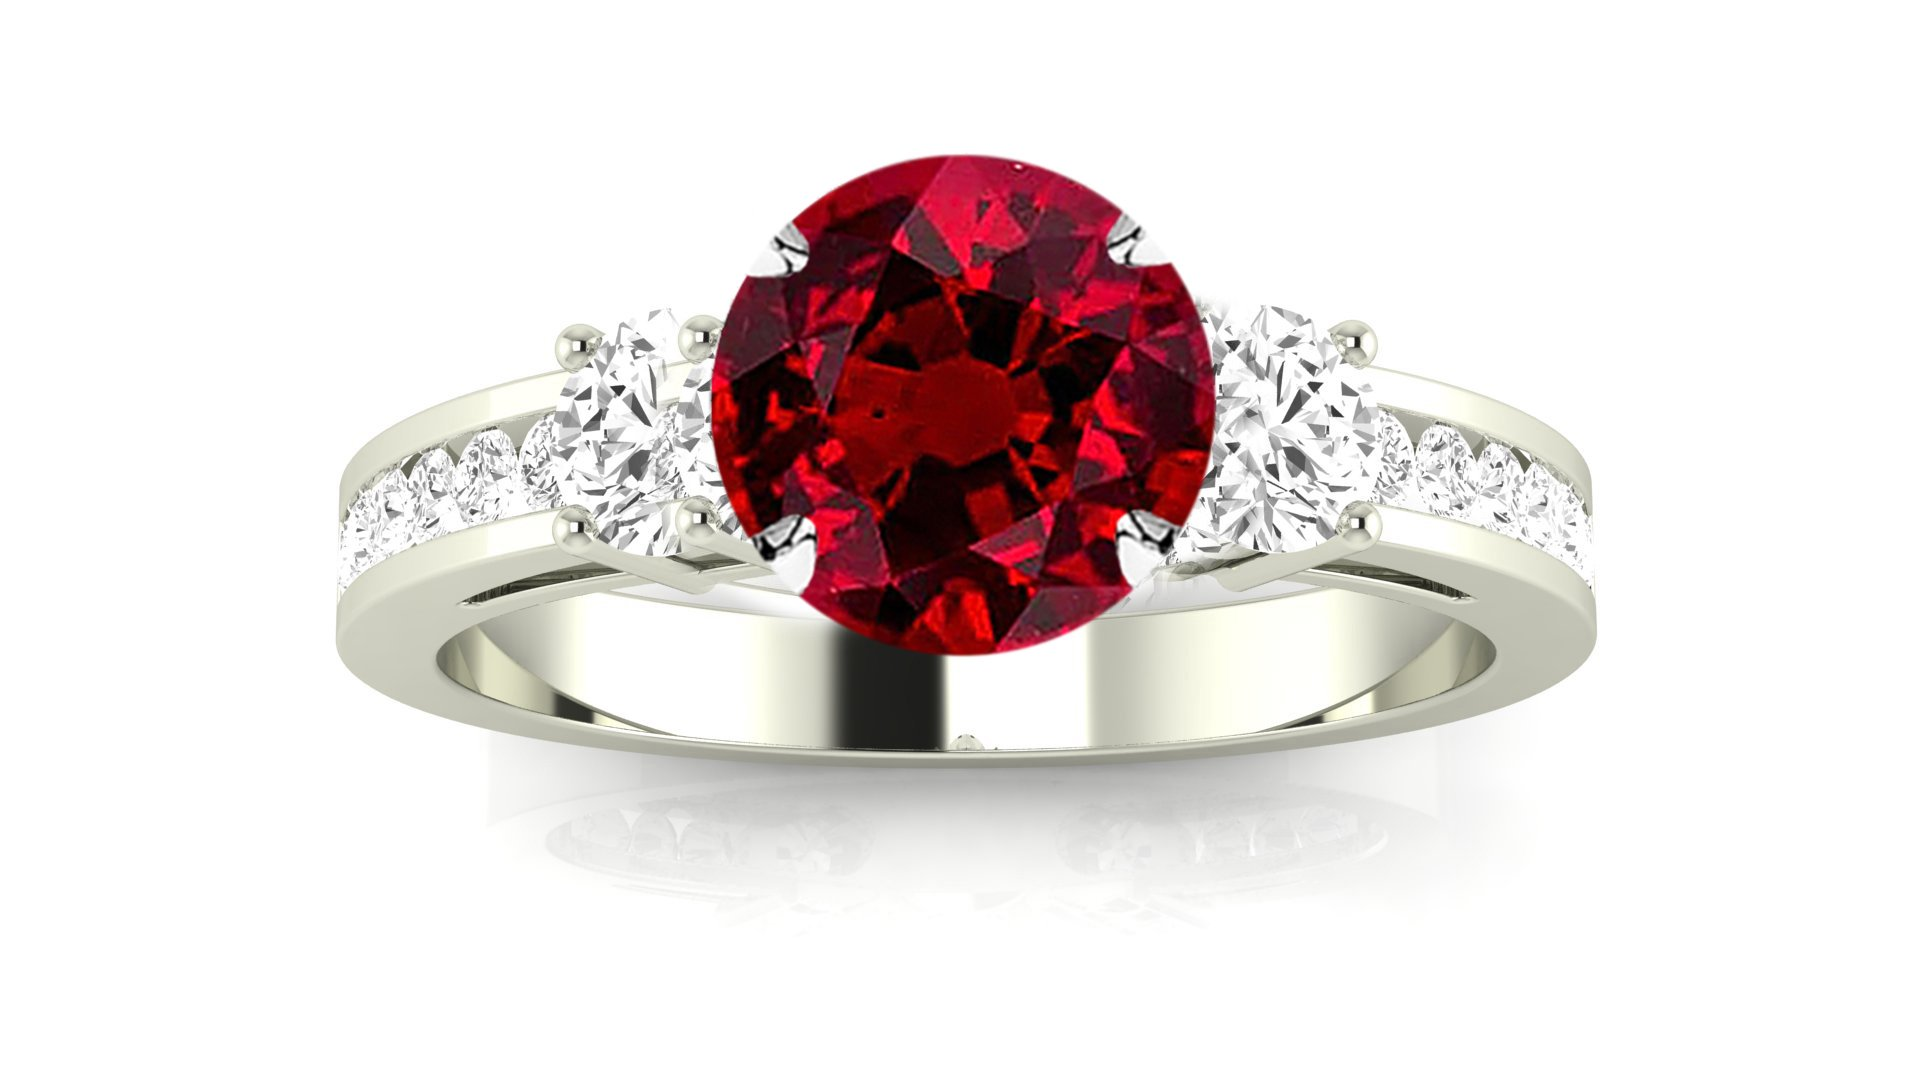 Platinum Channel Set 3 Three Stone Diamond Engagement Ring with a 0.5 Carat Ruby Heirloom Quality Center